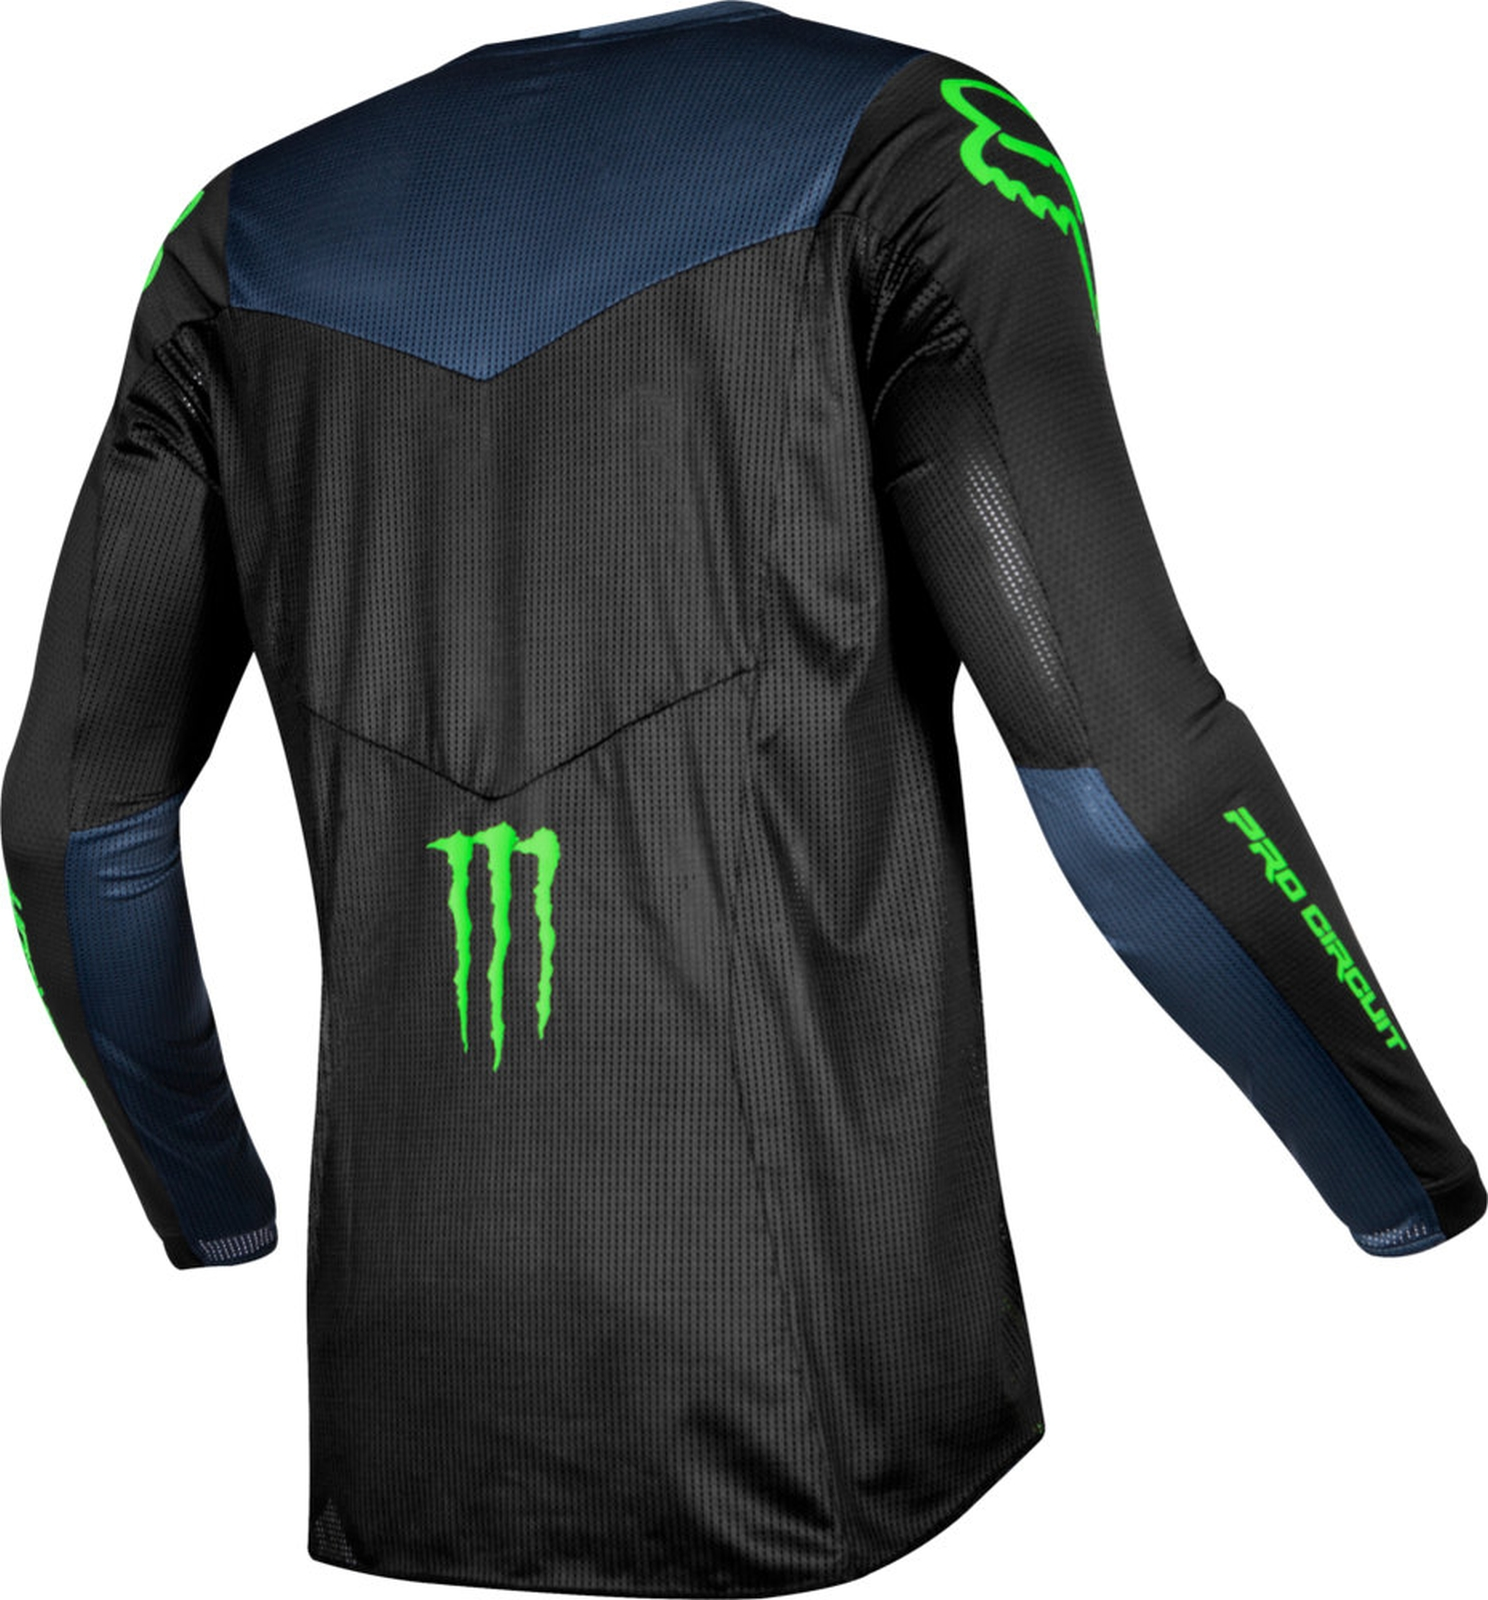 MAGLIA FOX MONSTER 360 PC JERSEY